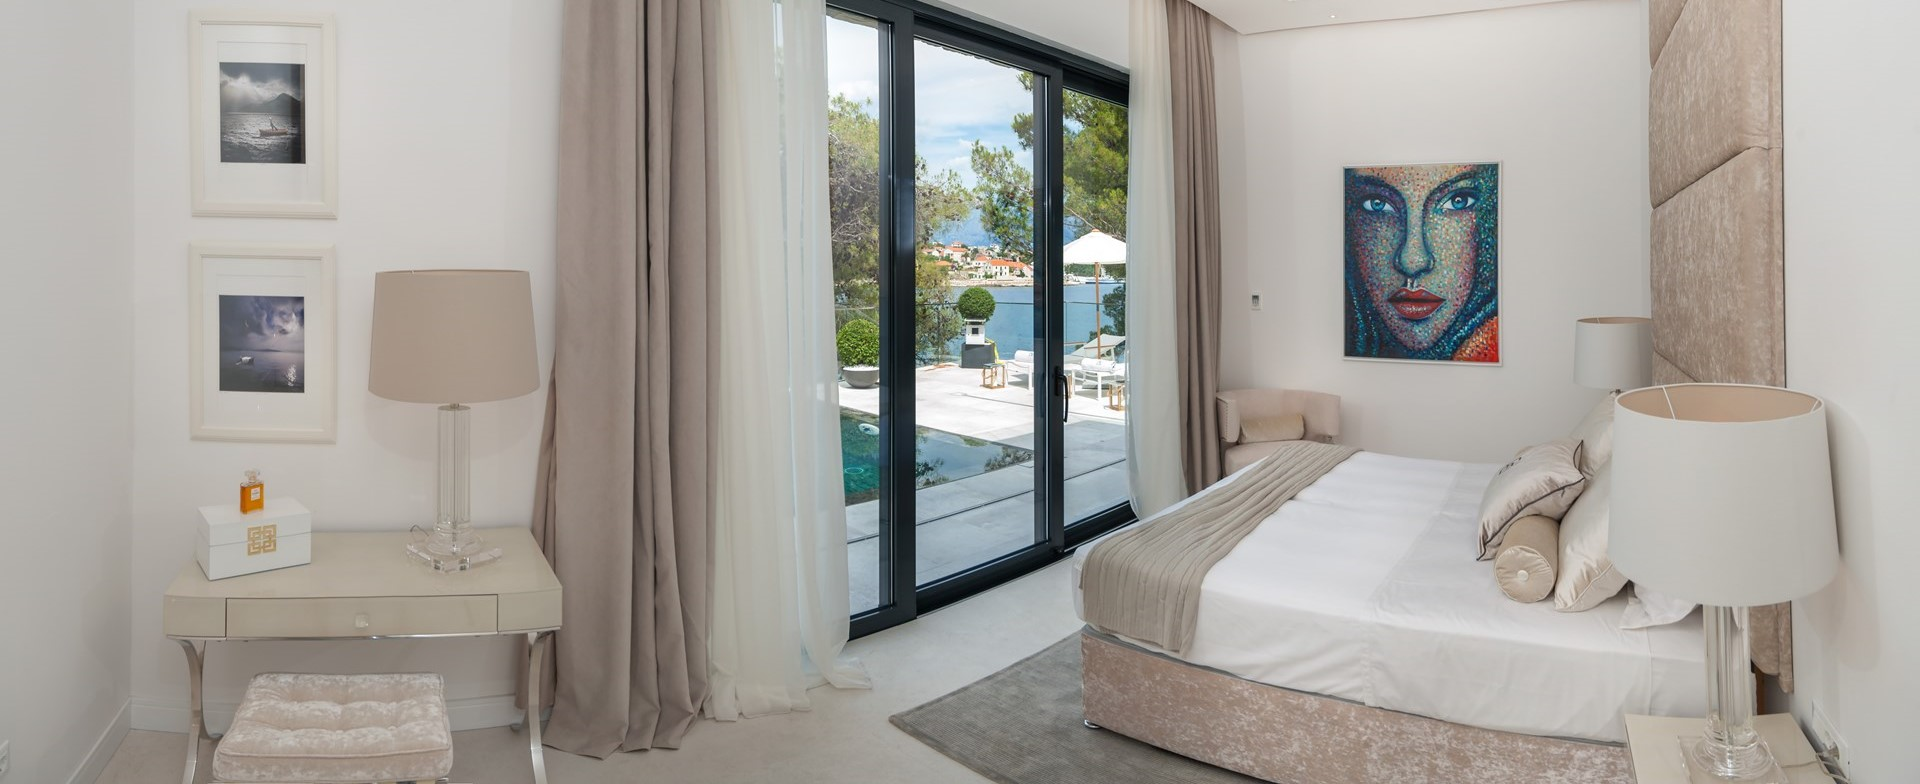 sumartin-bay-house-double-bedroom3